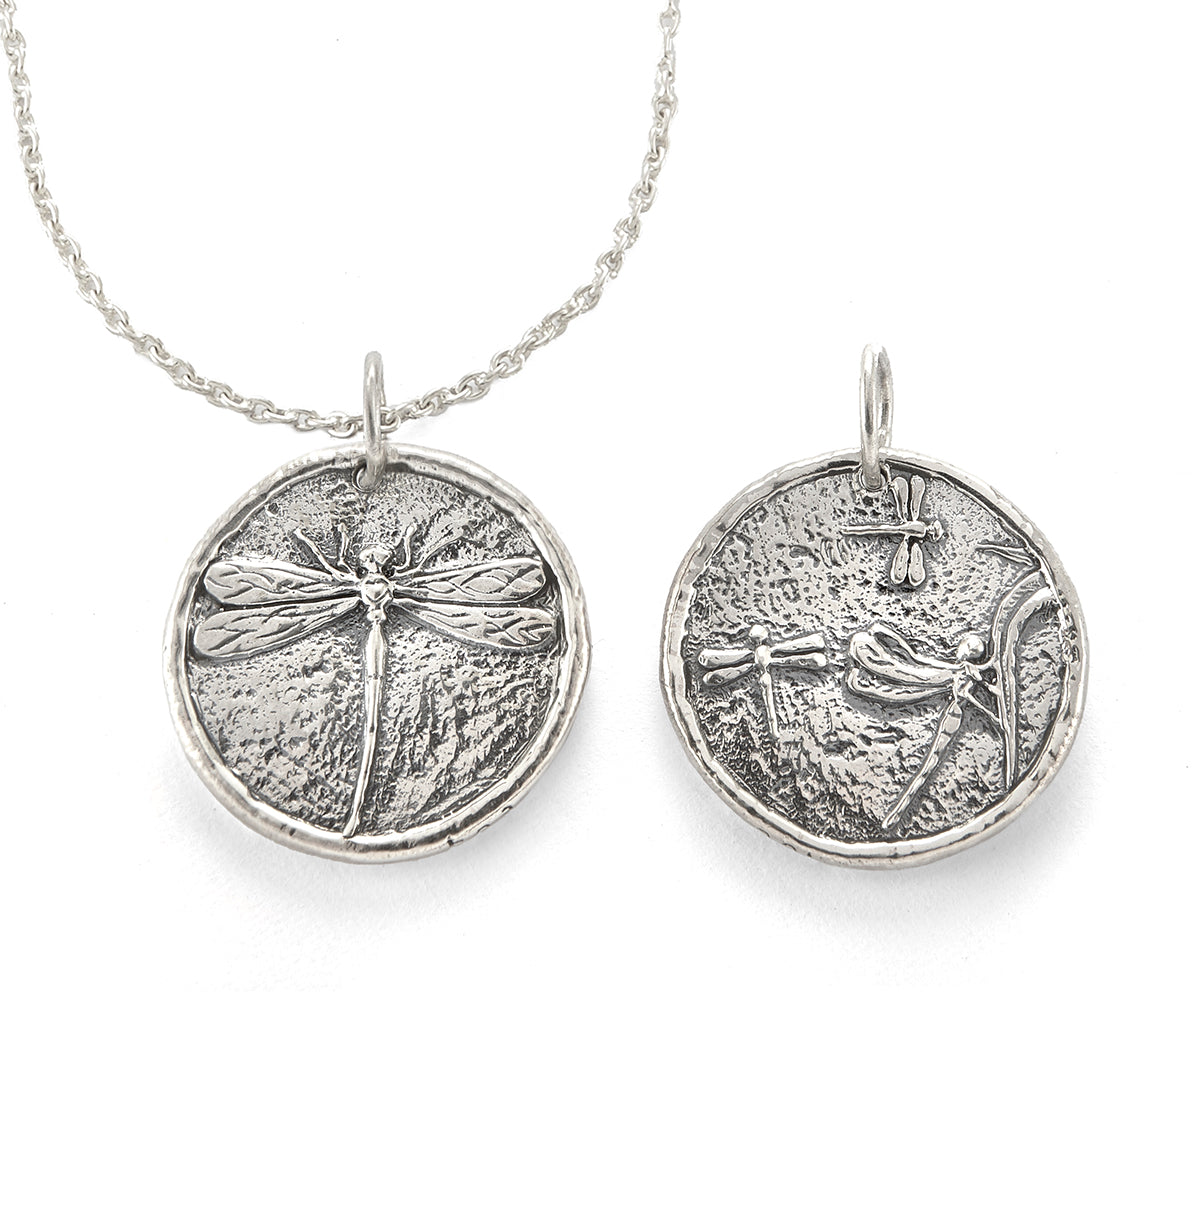 Dragonfly Traveller's Coin Necklace in Sterling Silver